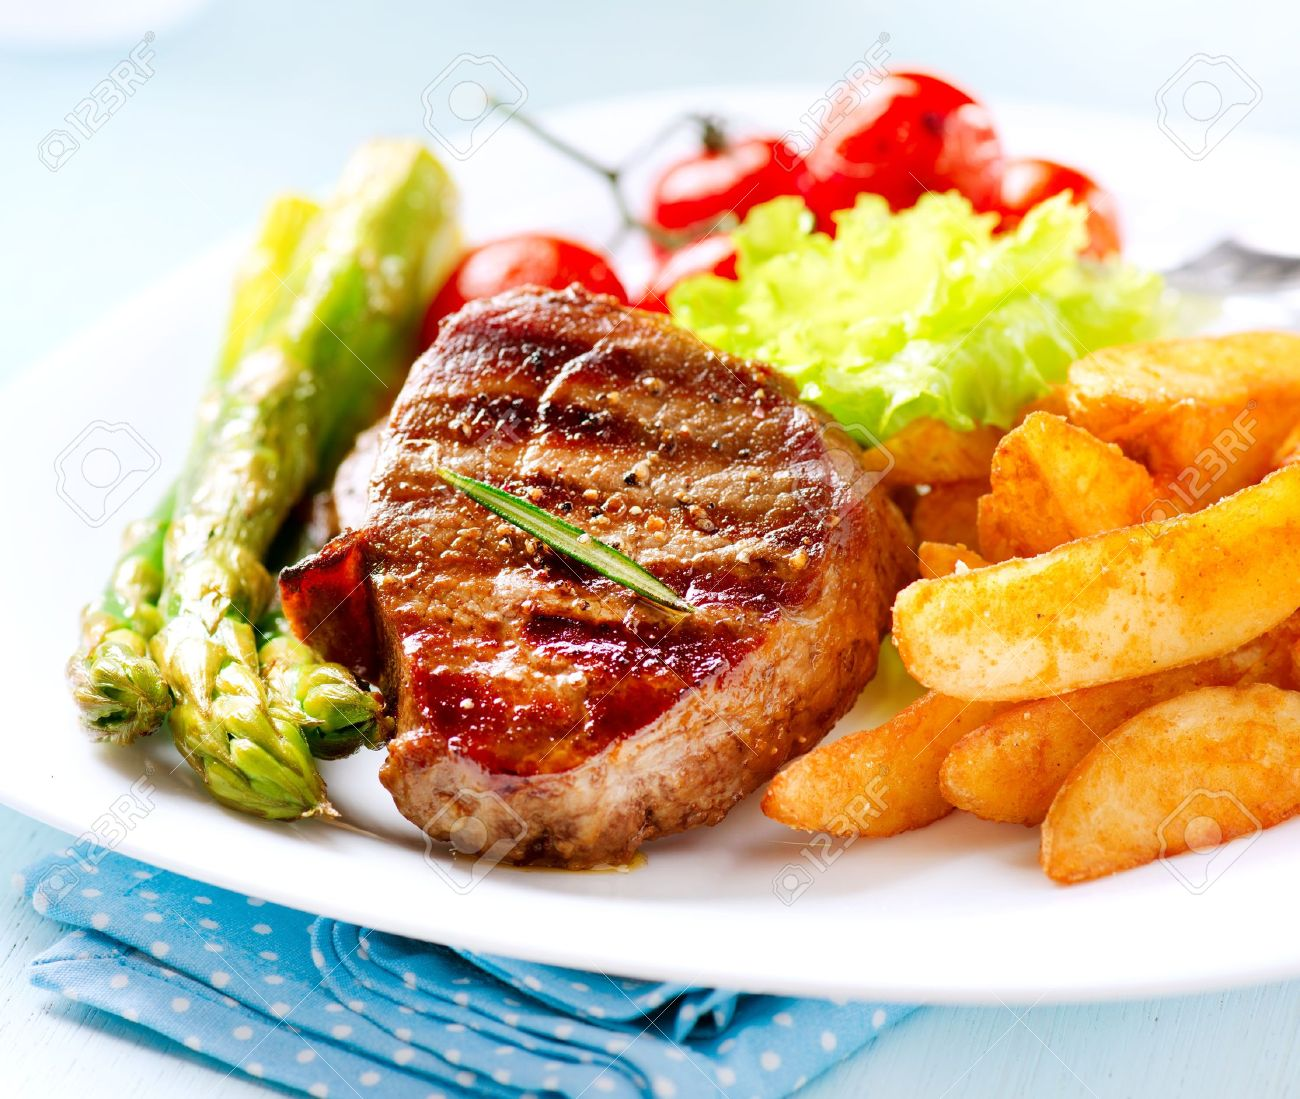 Grilled Beef Steak Meat with Fried Potato, Asparagus, Tomatoes Stock Photo - 18892654